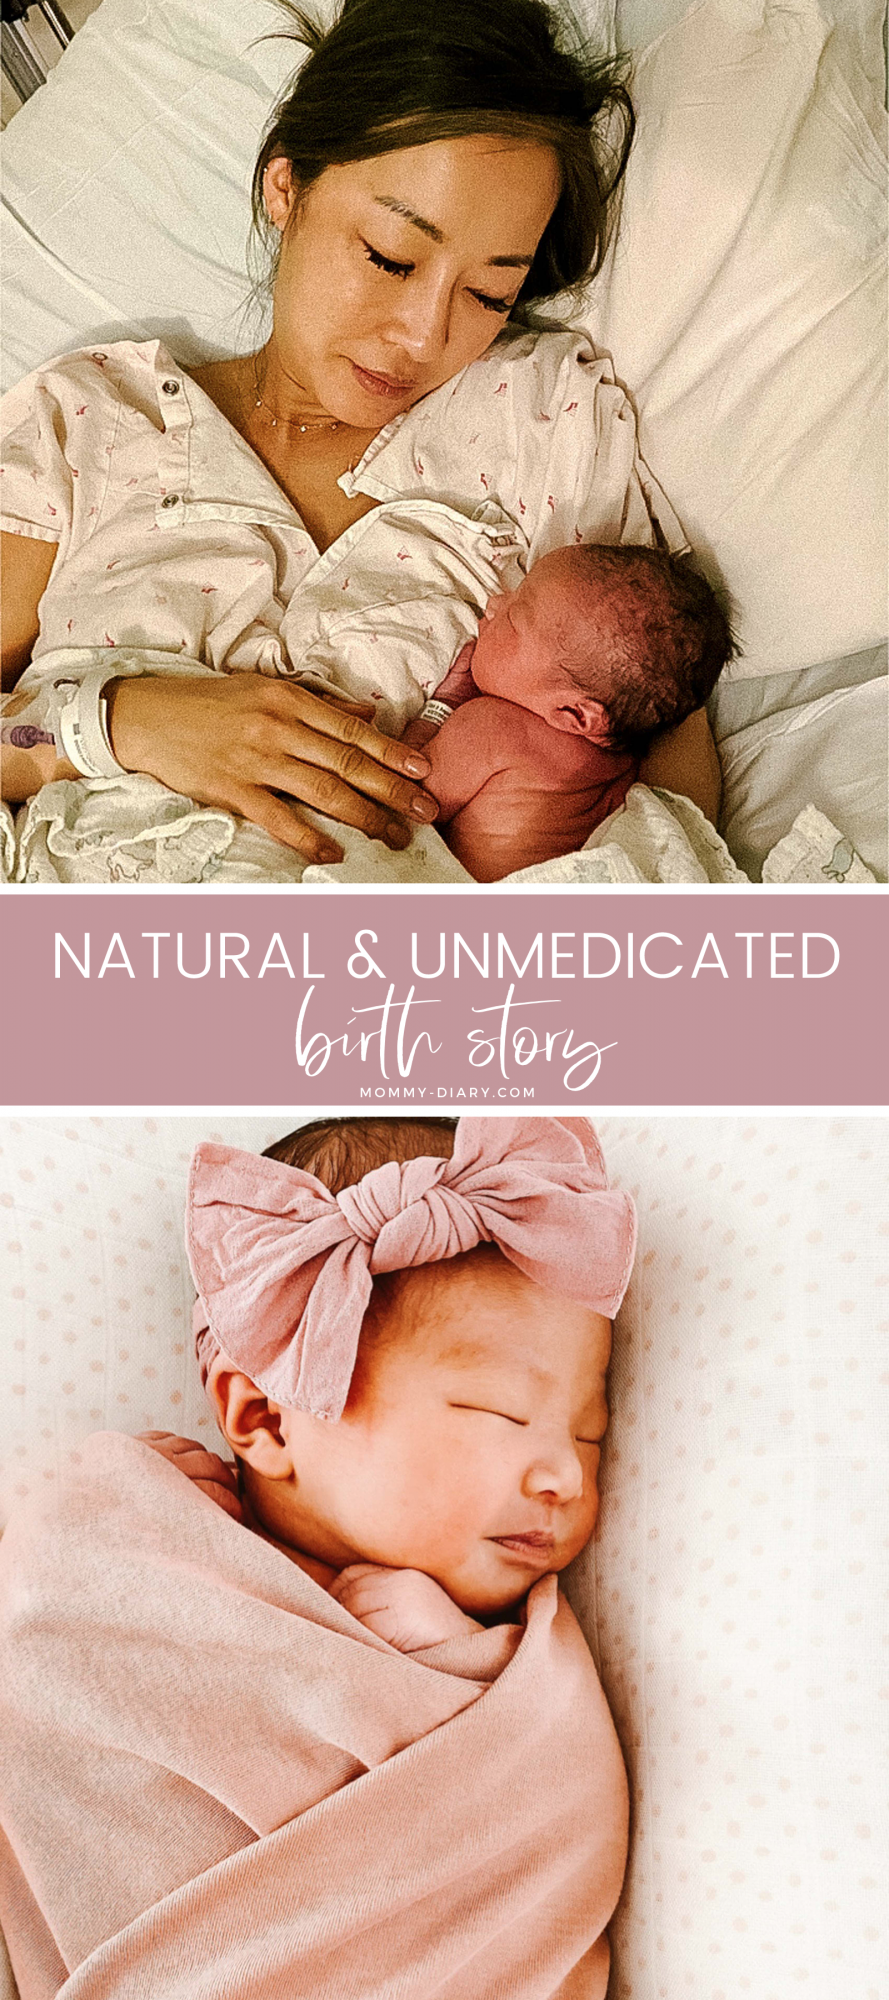 natural-unmedicated-birth-story